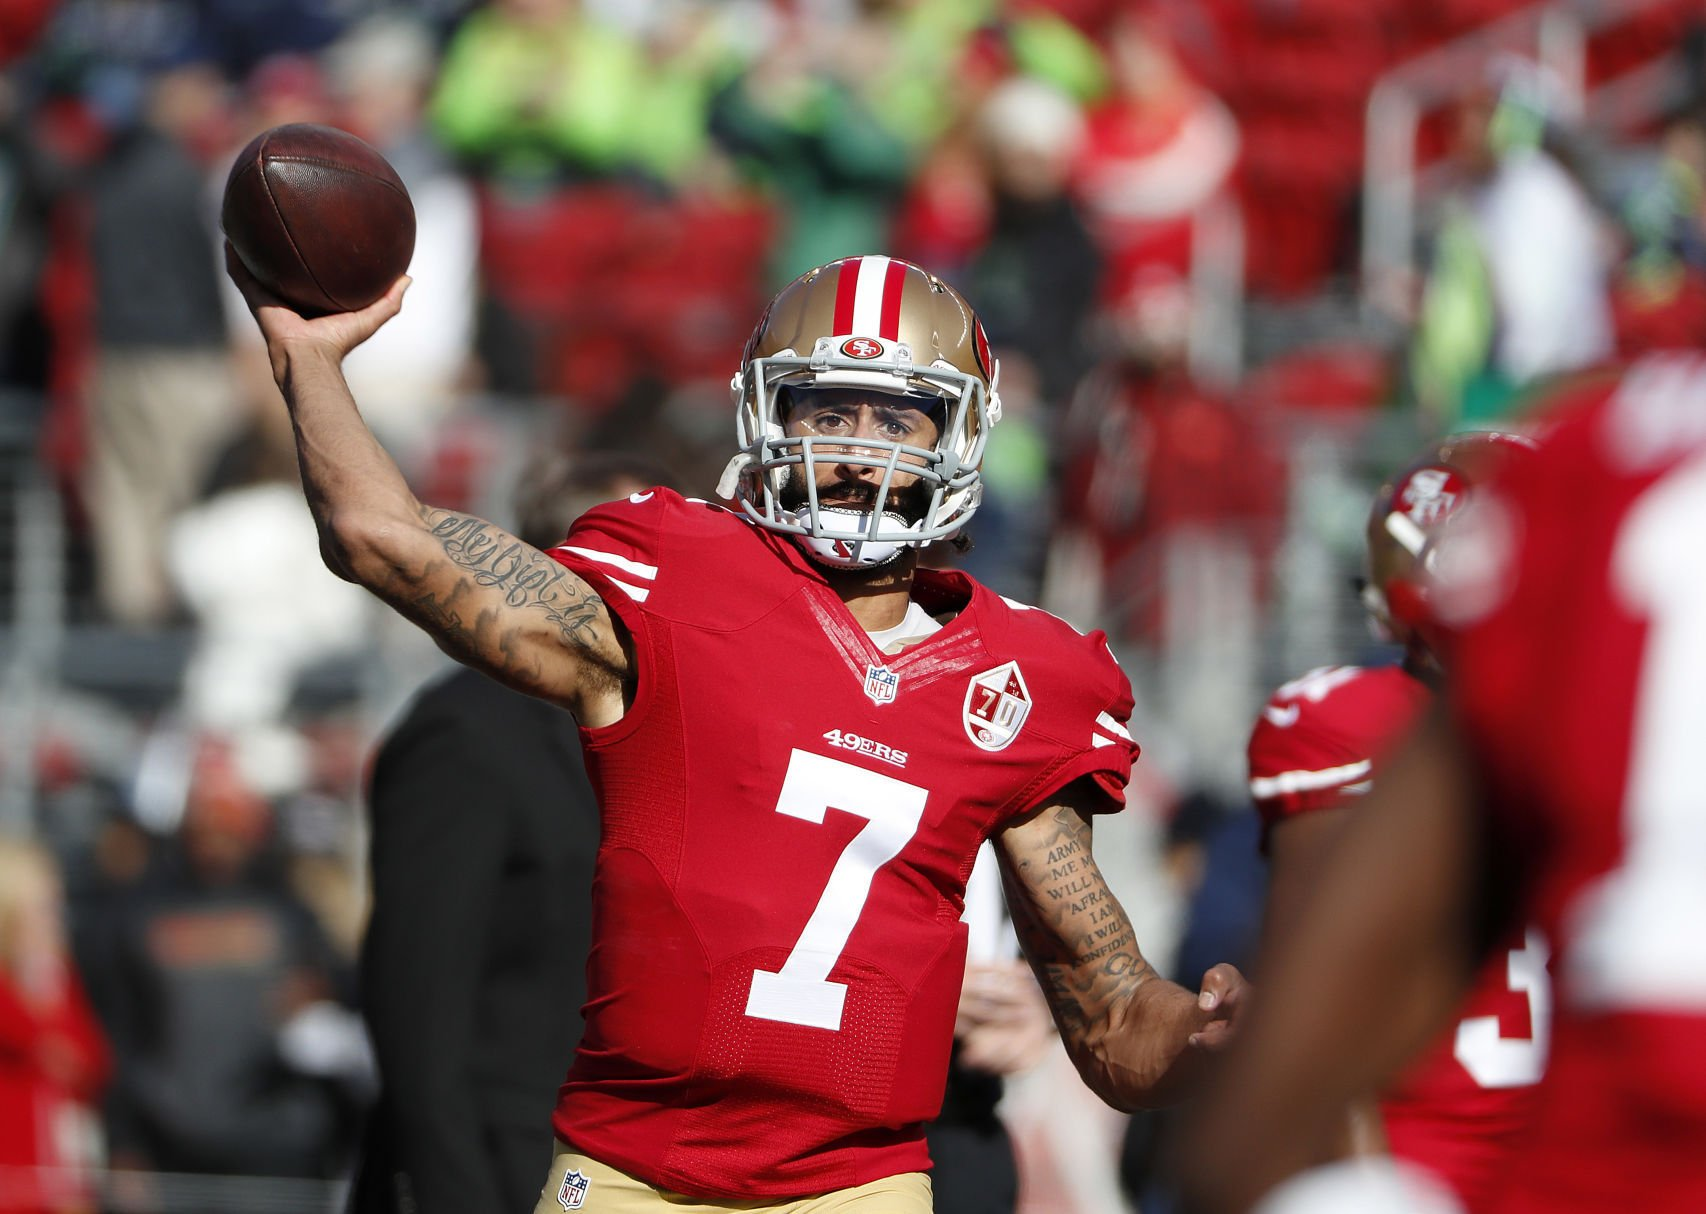 Colin Kaepernick Seems to Have A Message for Michael Vick